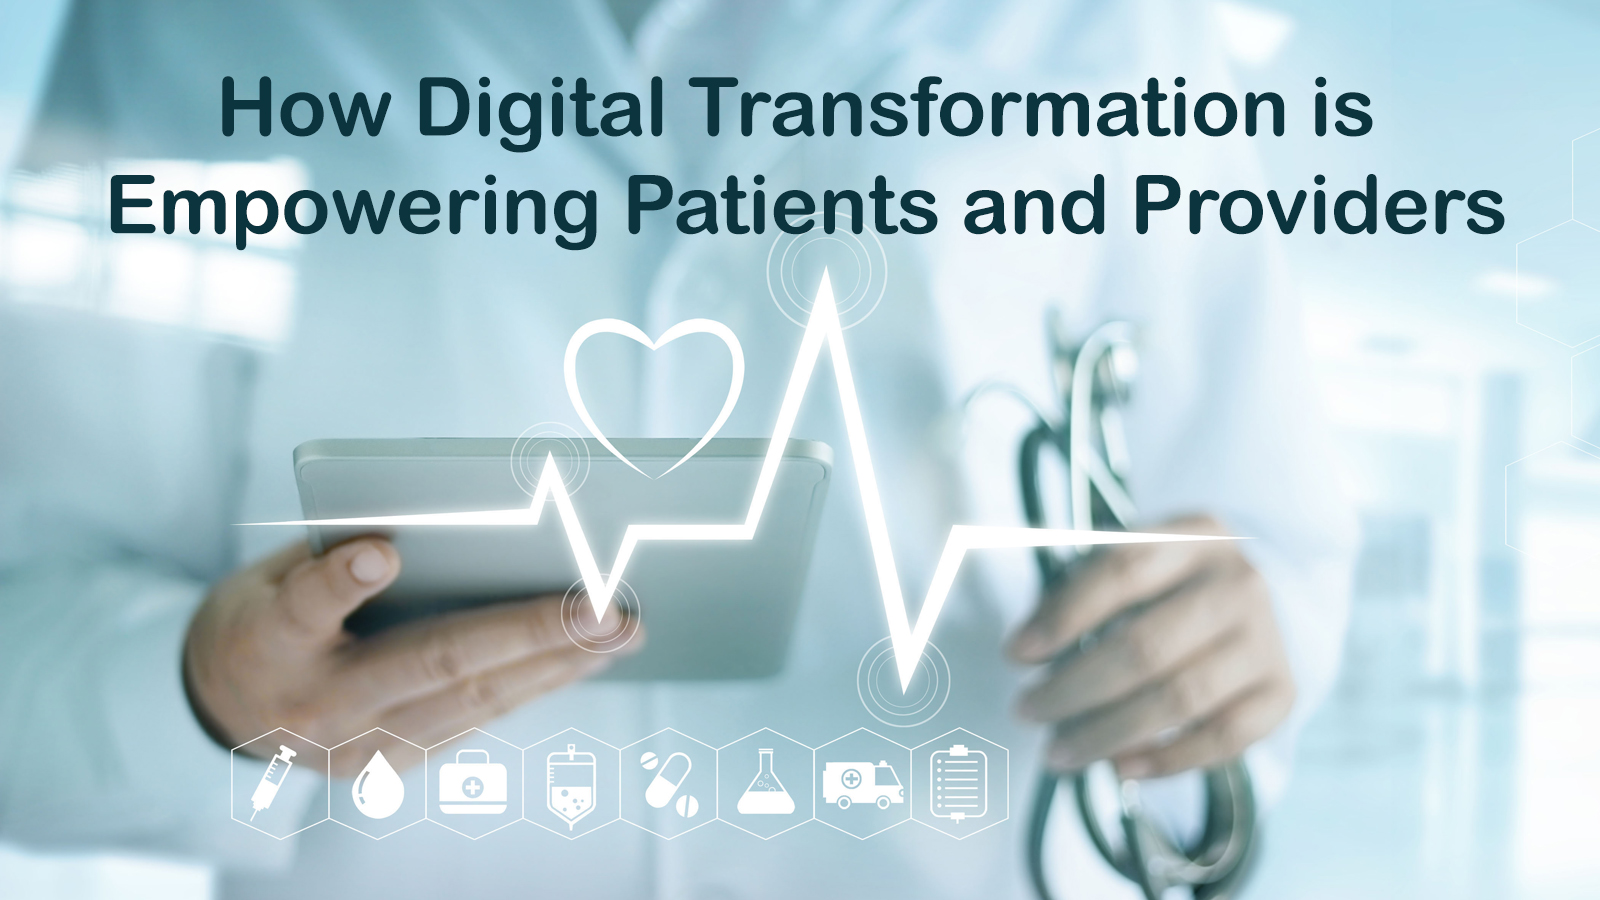 How digital transformation is empowering patients and providers